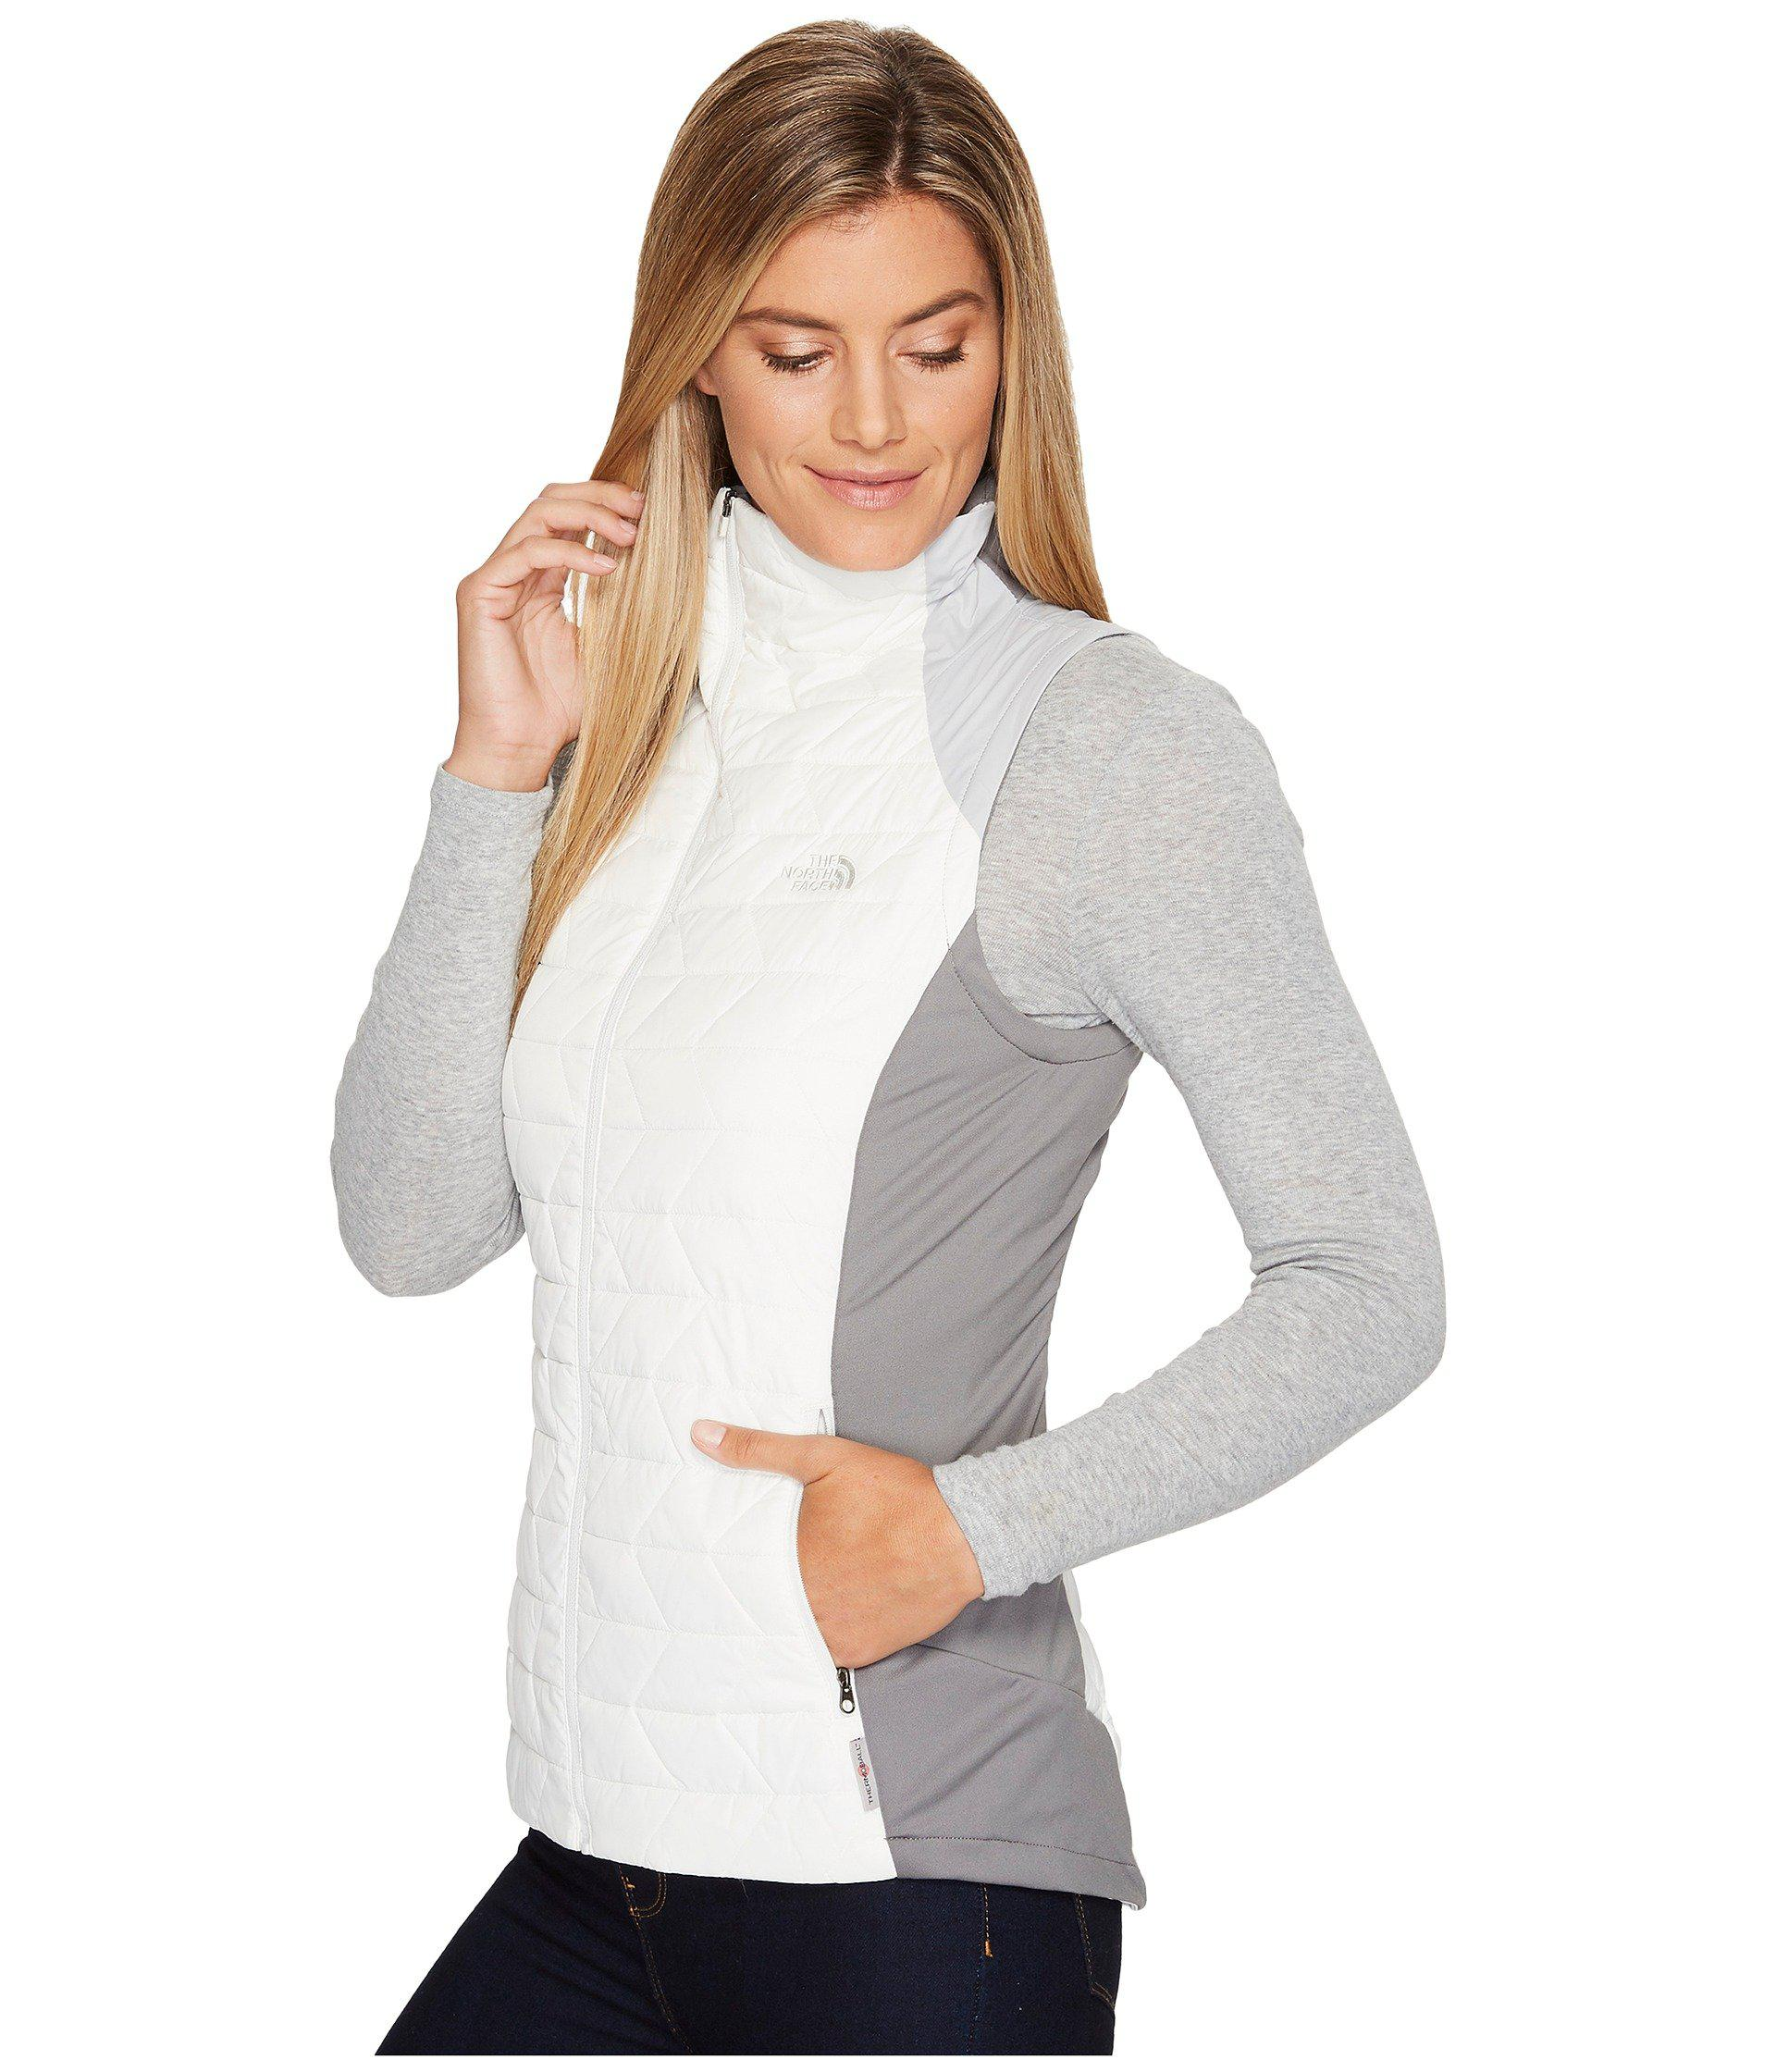 6a1c6a1e0f42 Lyst - The North Face Thermoball Active Vest in Gray